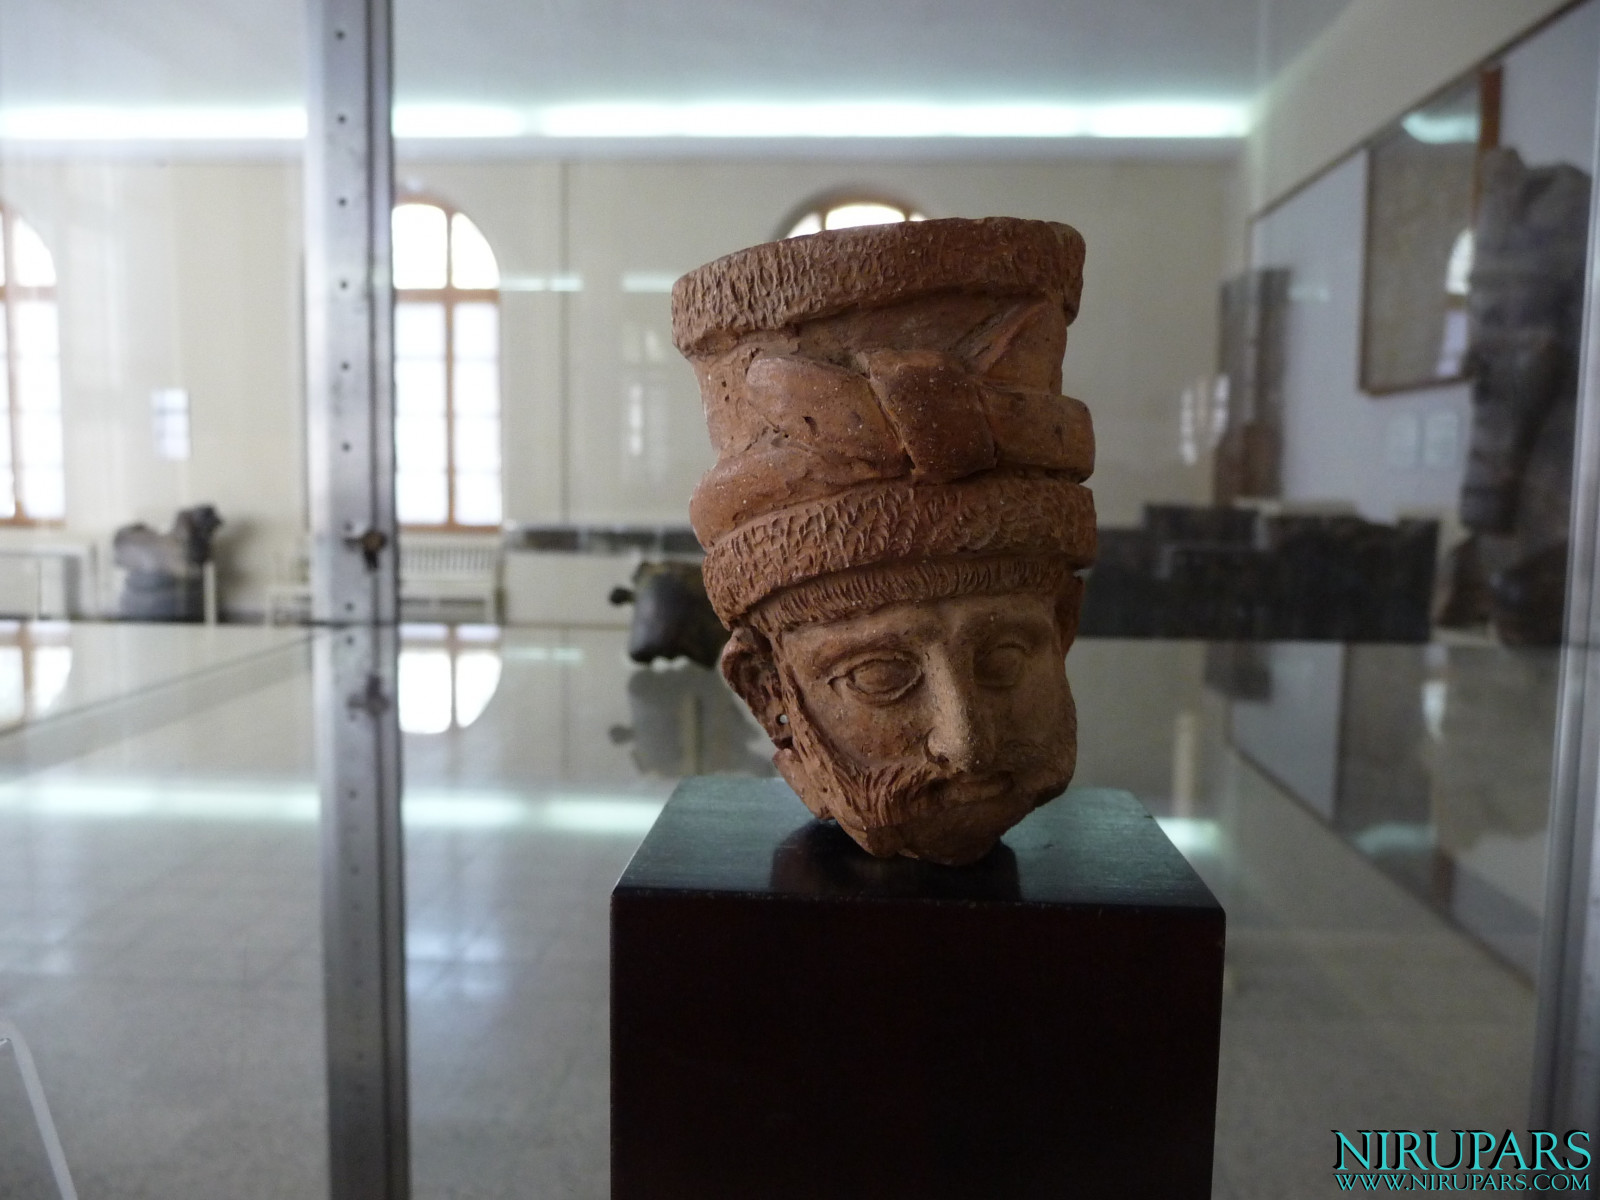 National Museum of Iran - Pottery Human Head